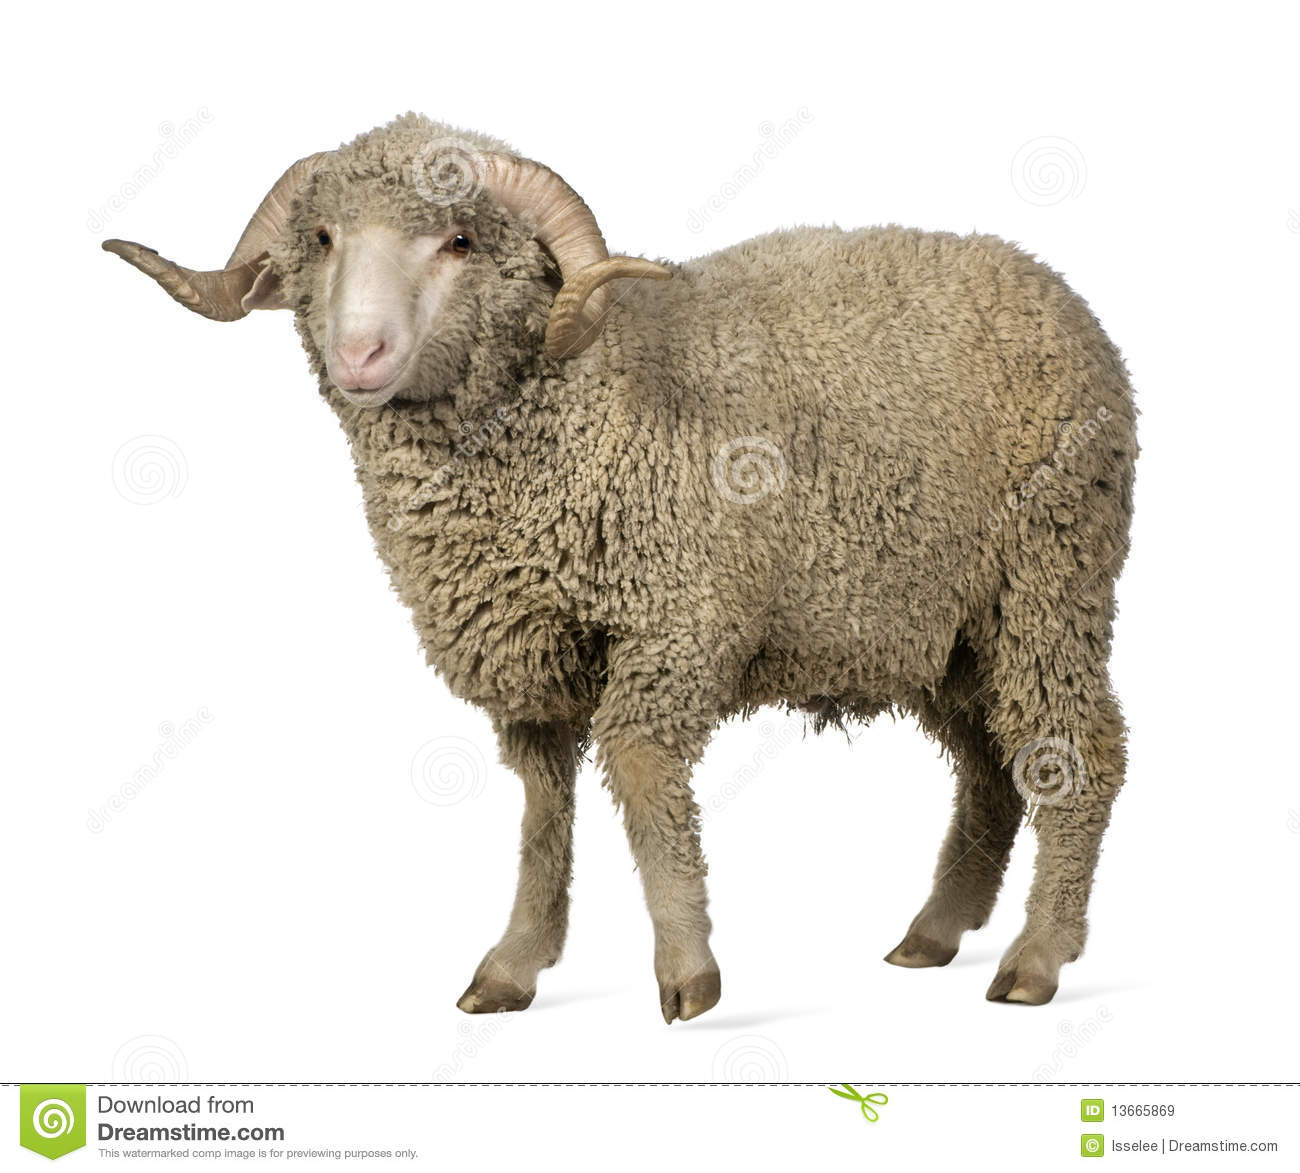 Arles Merino sheep, ram, 1 year old